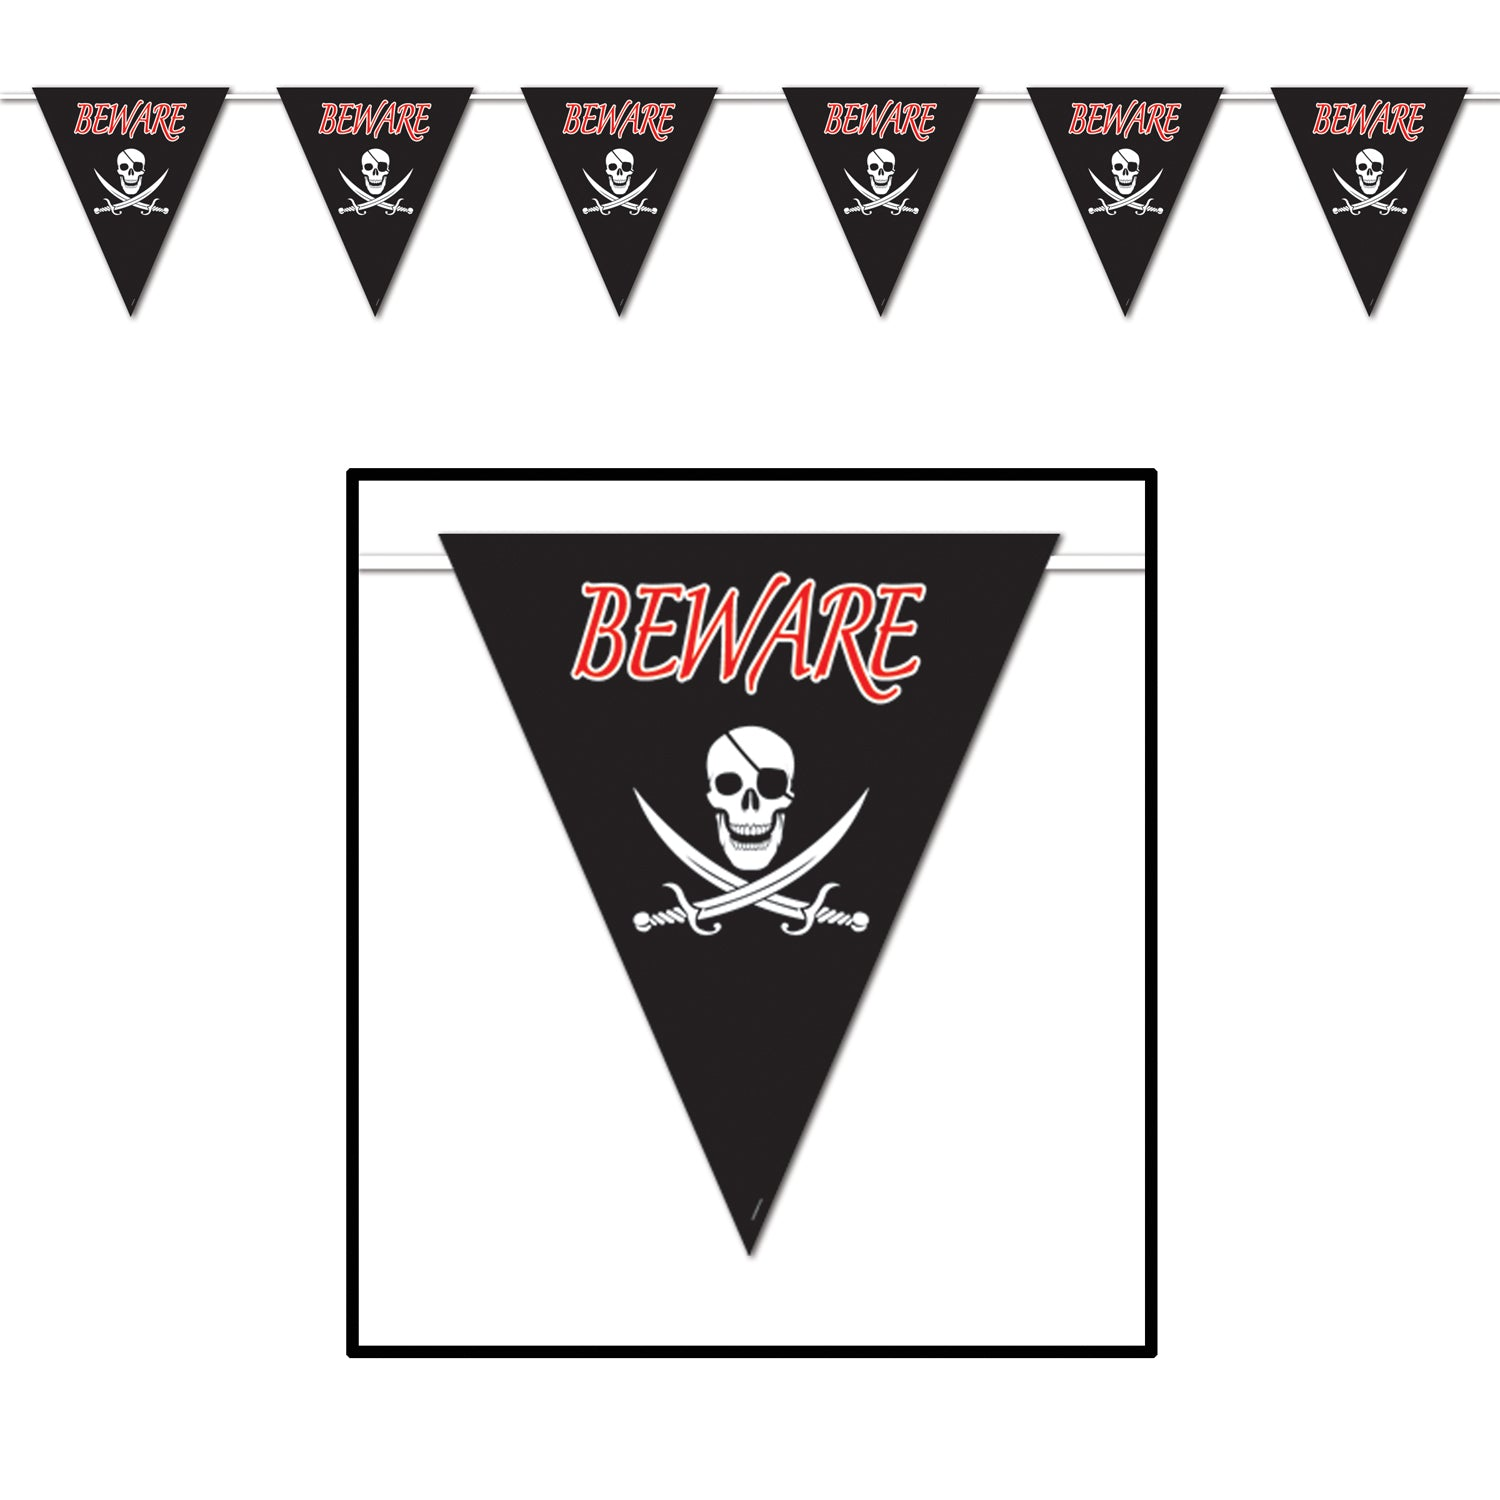 Beware Of Pirates Giant Pennant Banner by Beistle - Pirate Theme Decorations